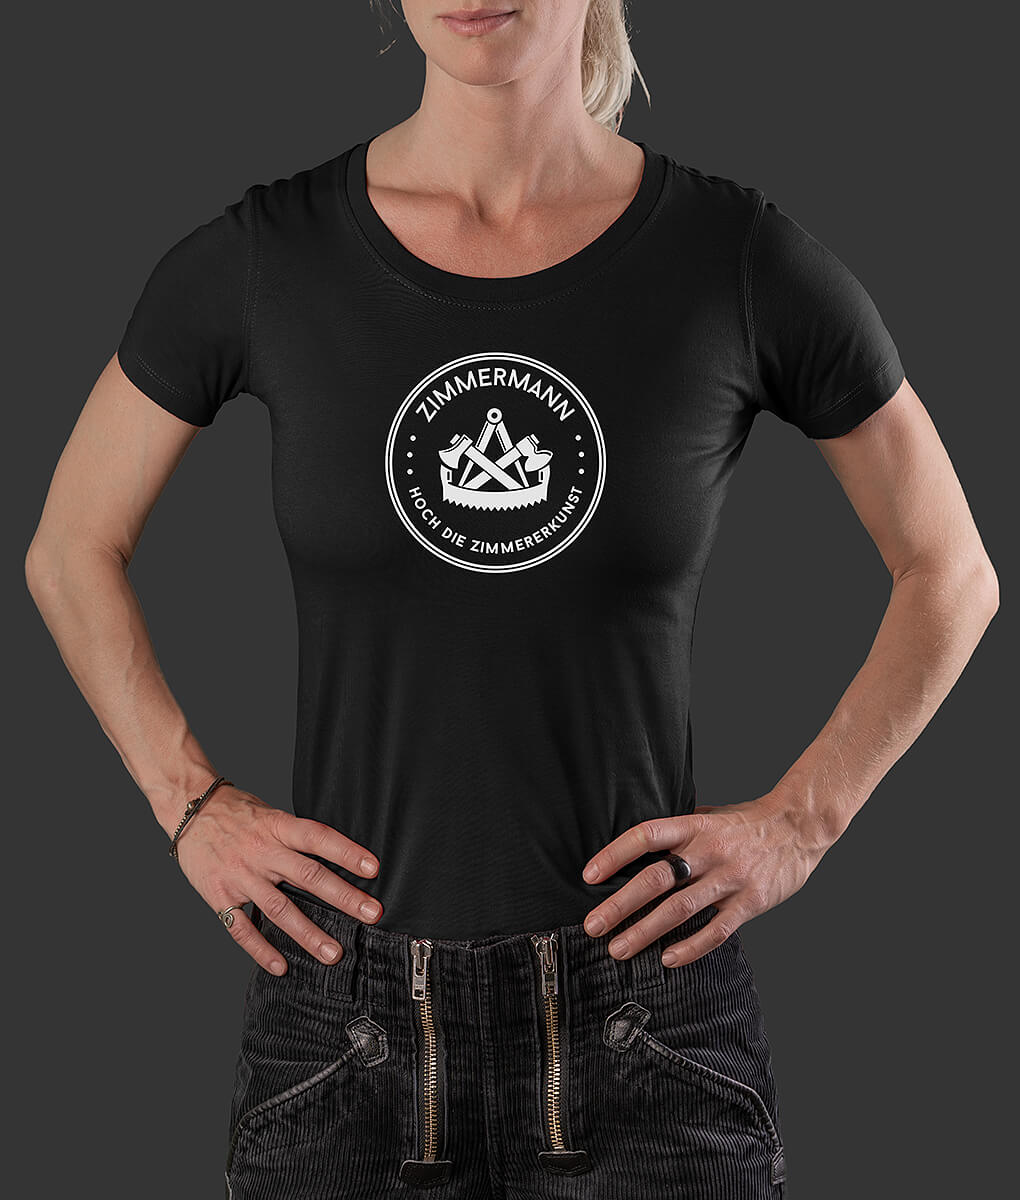 Damen T-Shirt Ida Siegel Zimmermann